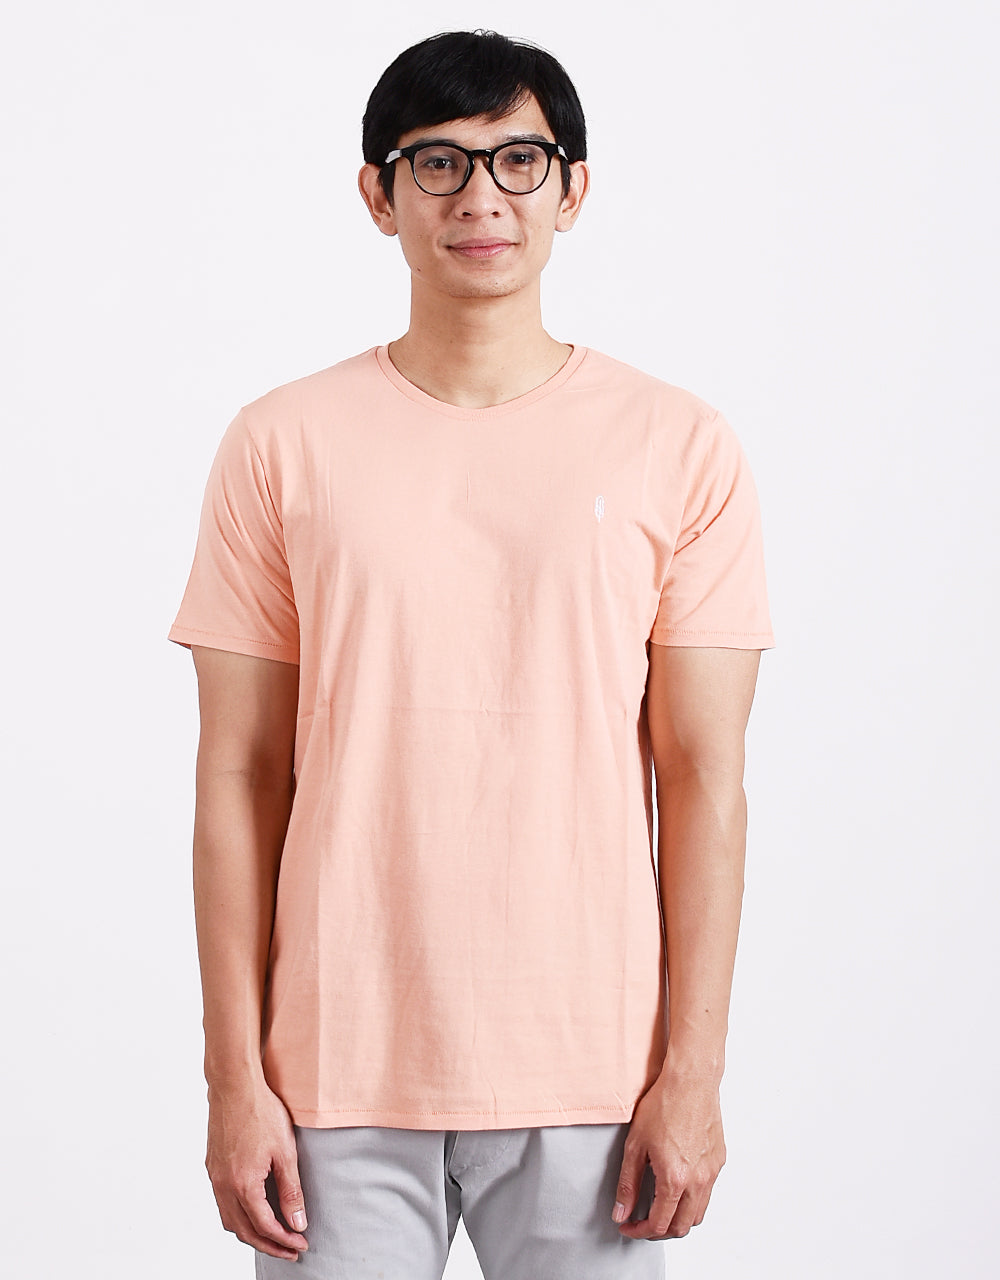 Intention 13 Basic Tees